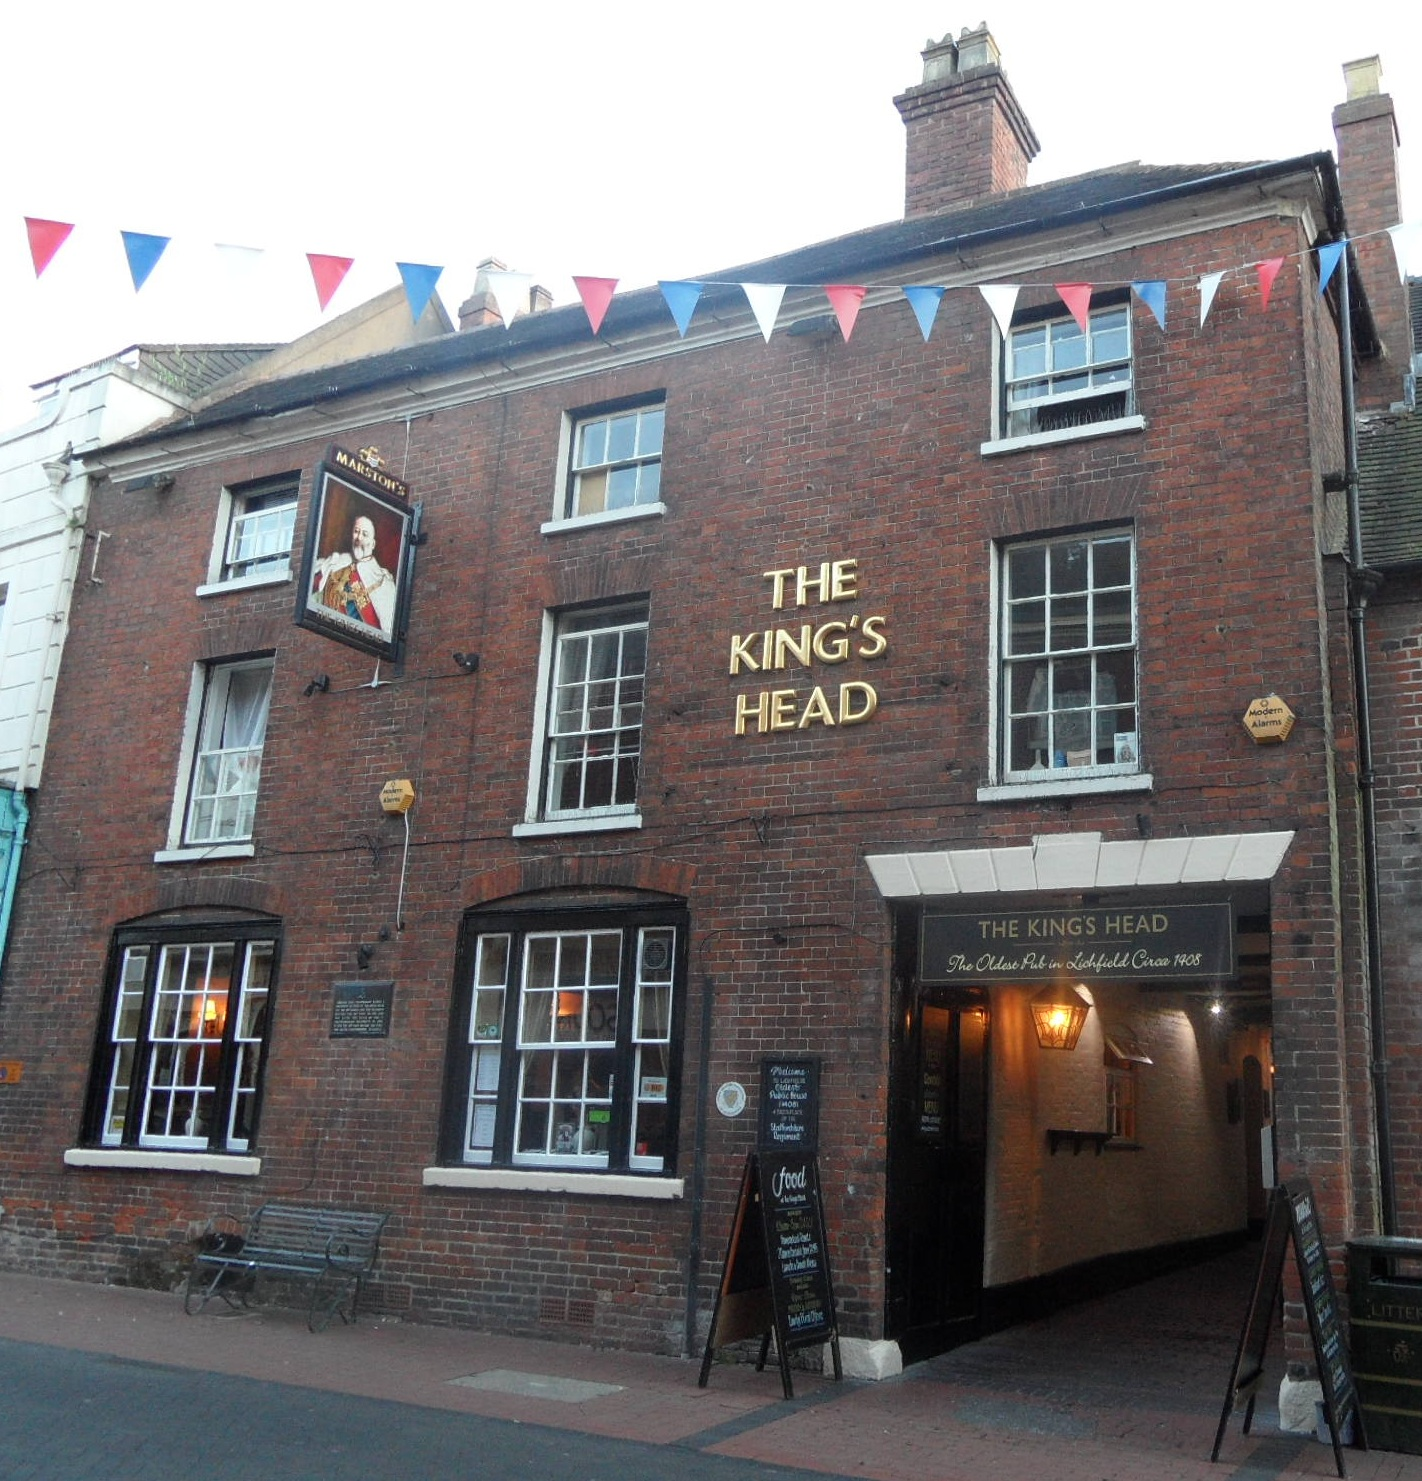 The King's Head Pub in Bird Street, Lichfield. It is an old coaching inn dating back to 1408 and was the birthplace of the South Staffordshire Regiment.